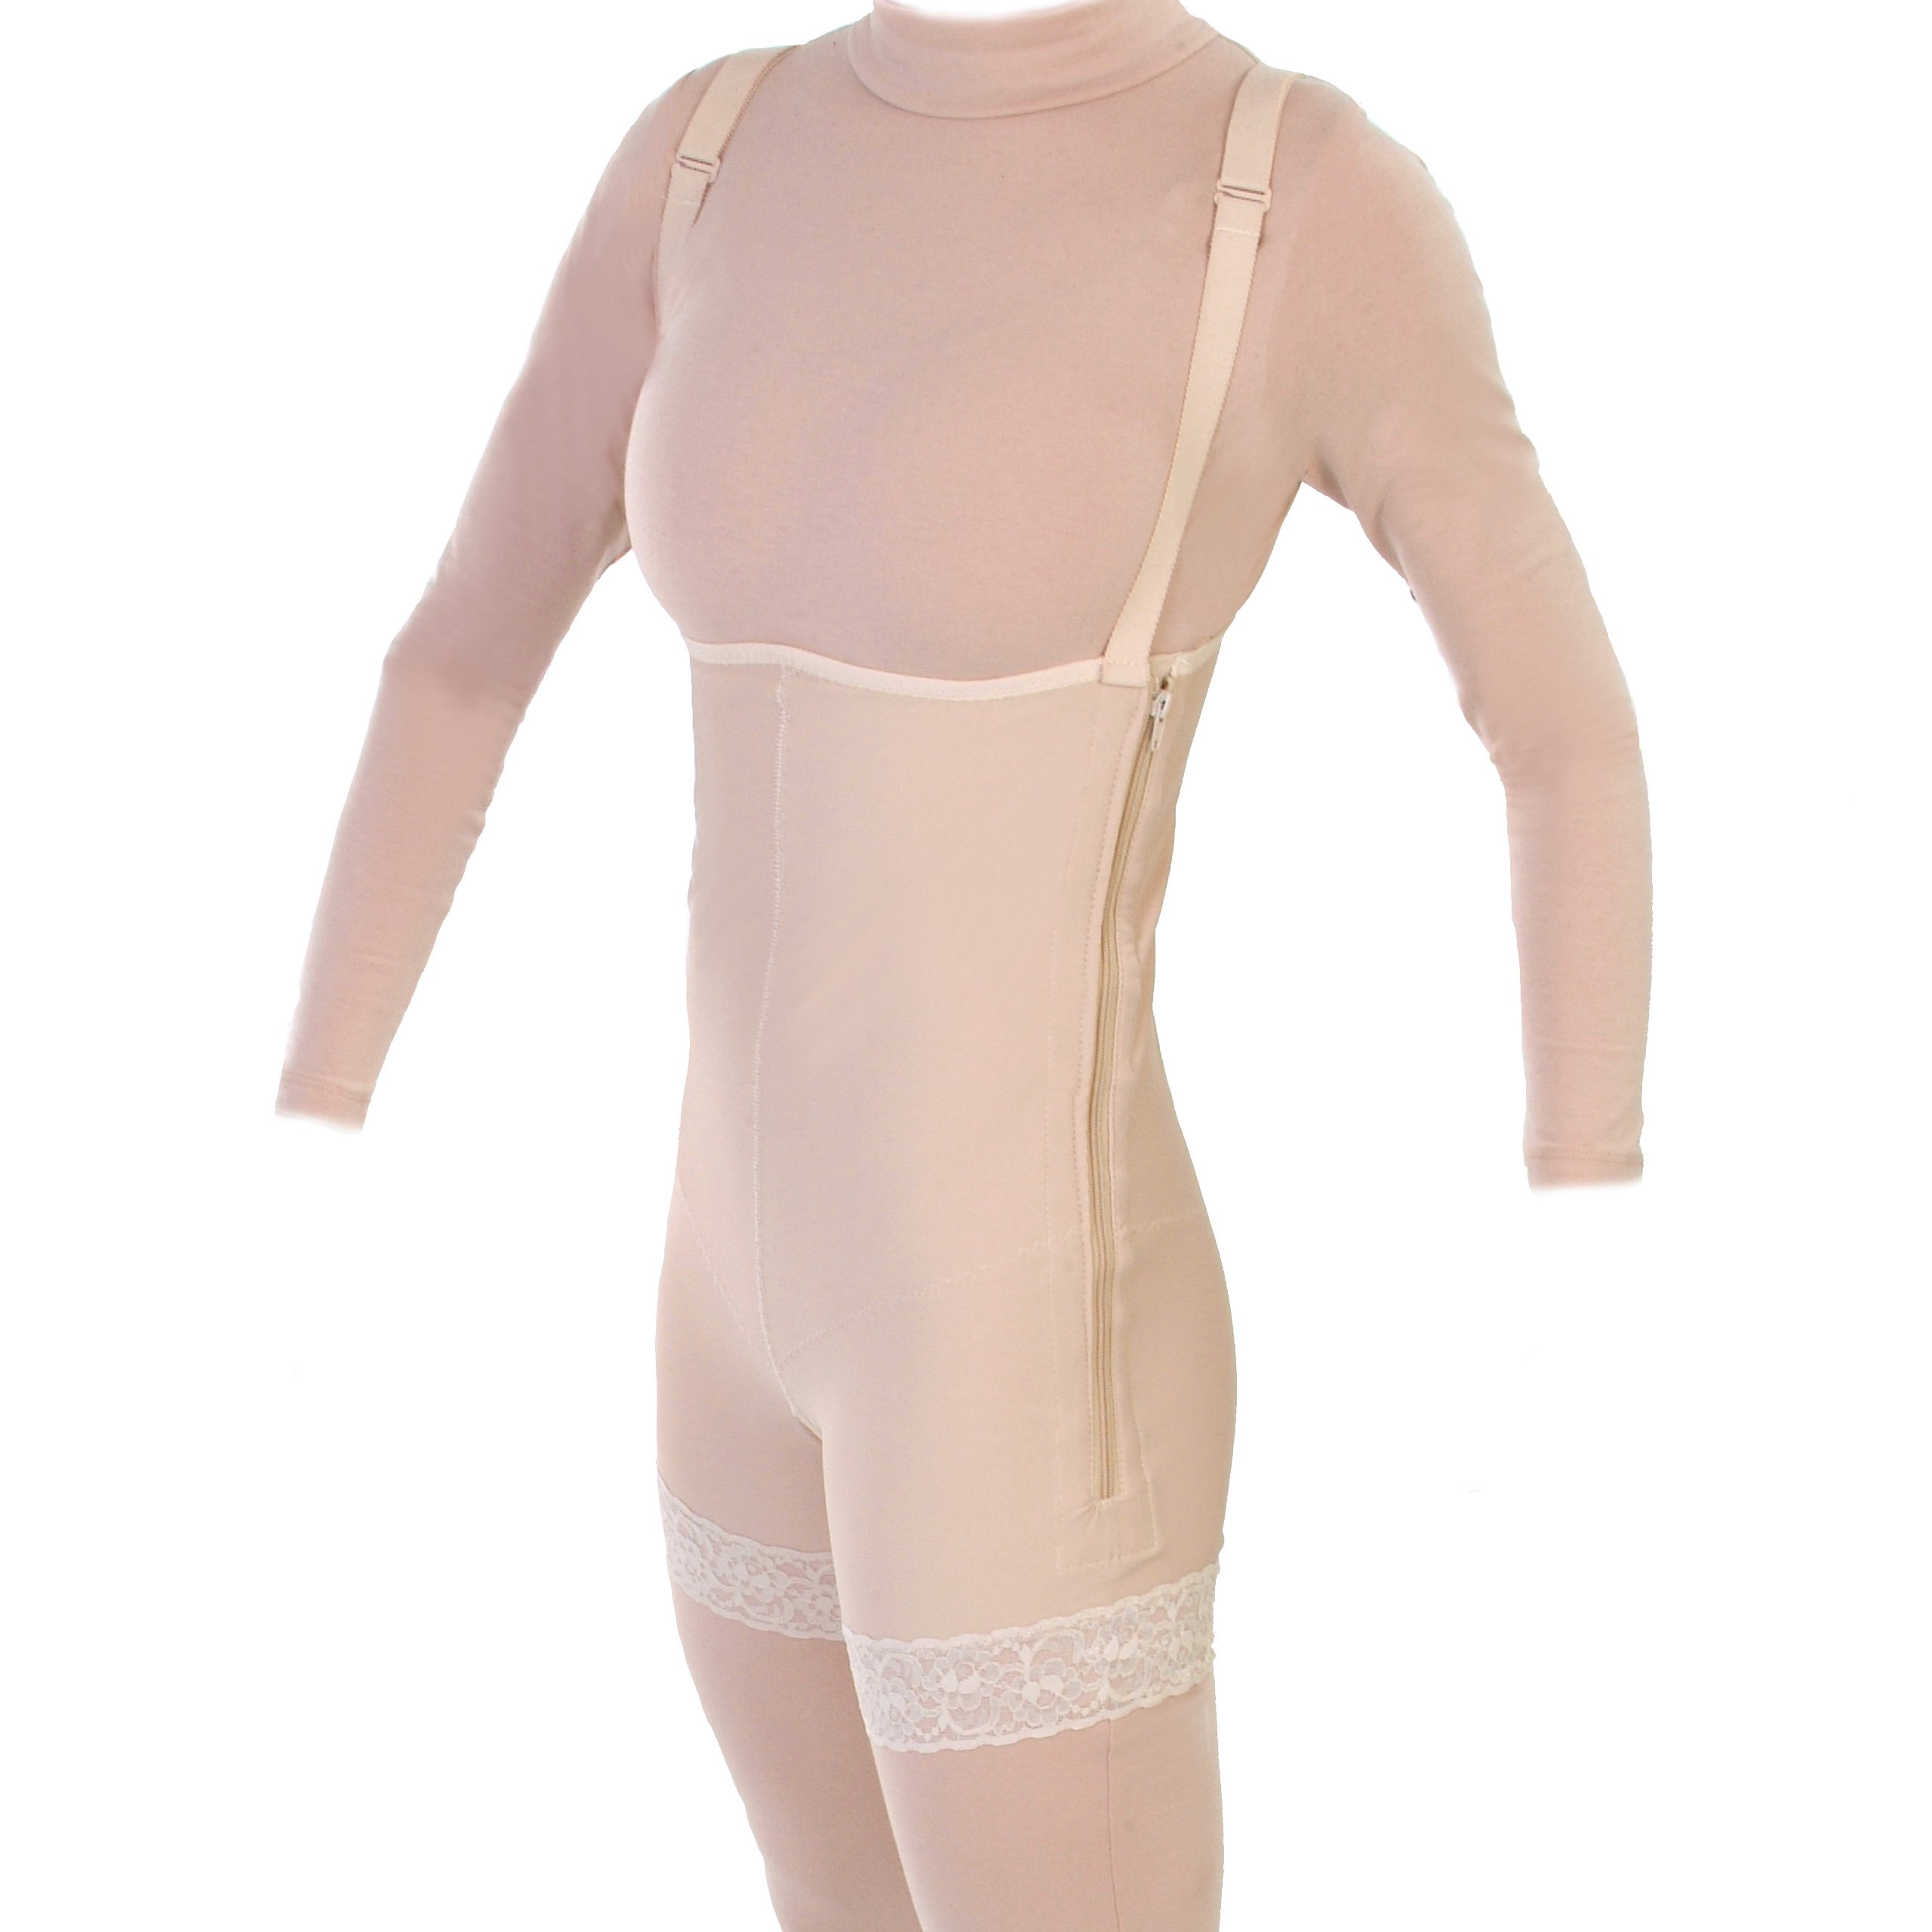 Style 33Z High Thigh Body Garment with Suspenders and Zippers (Small)